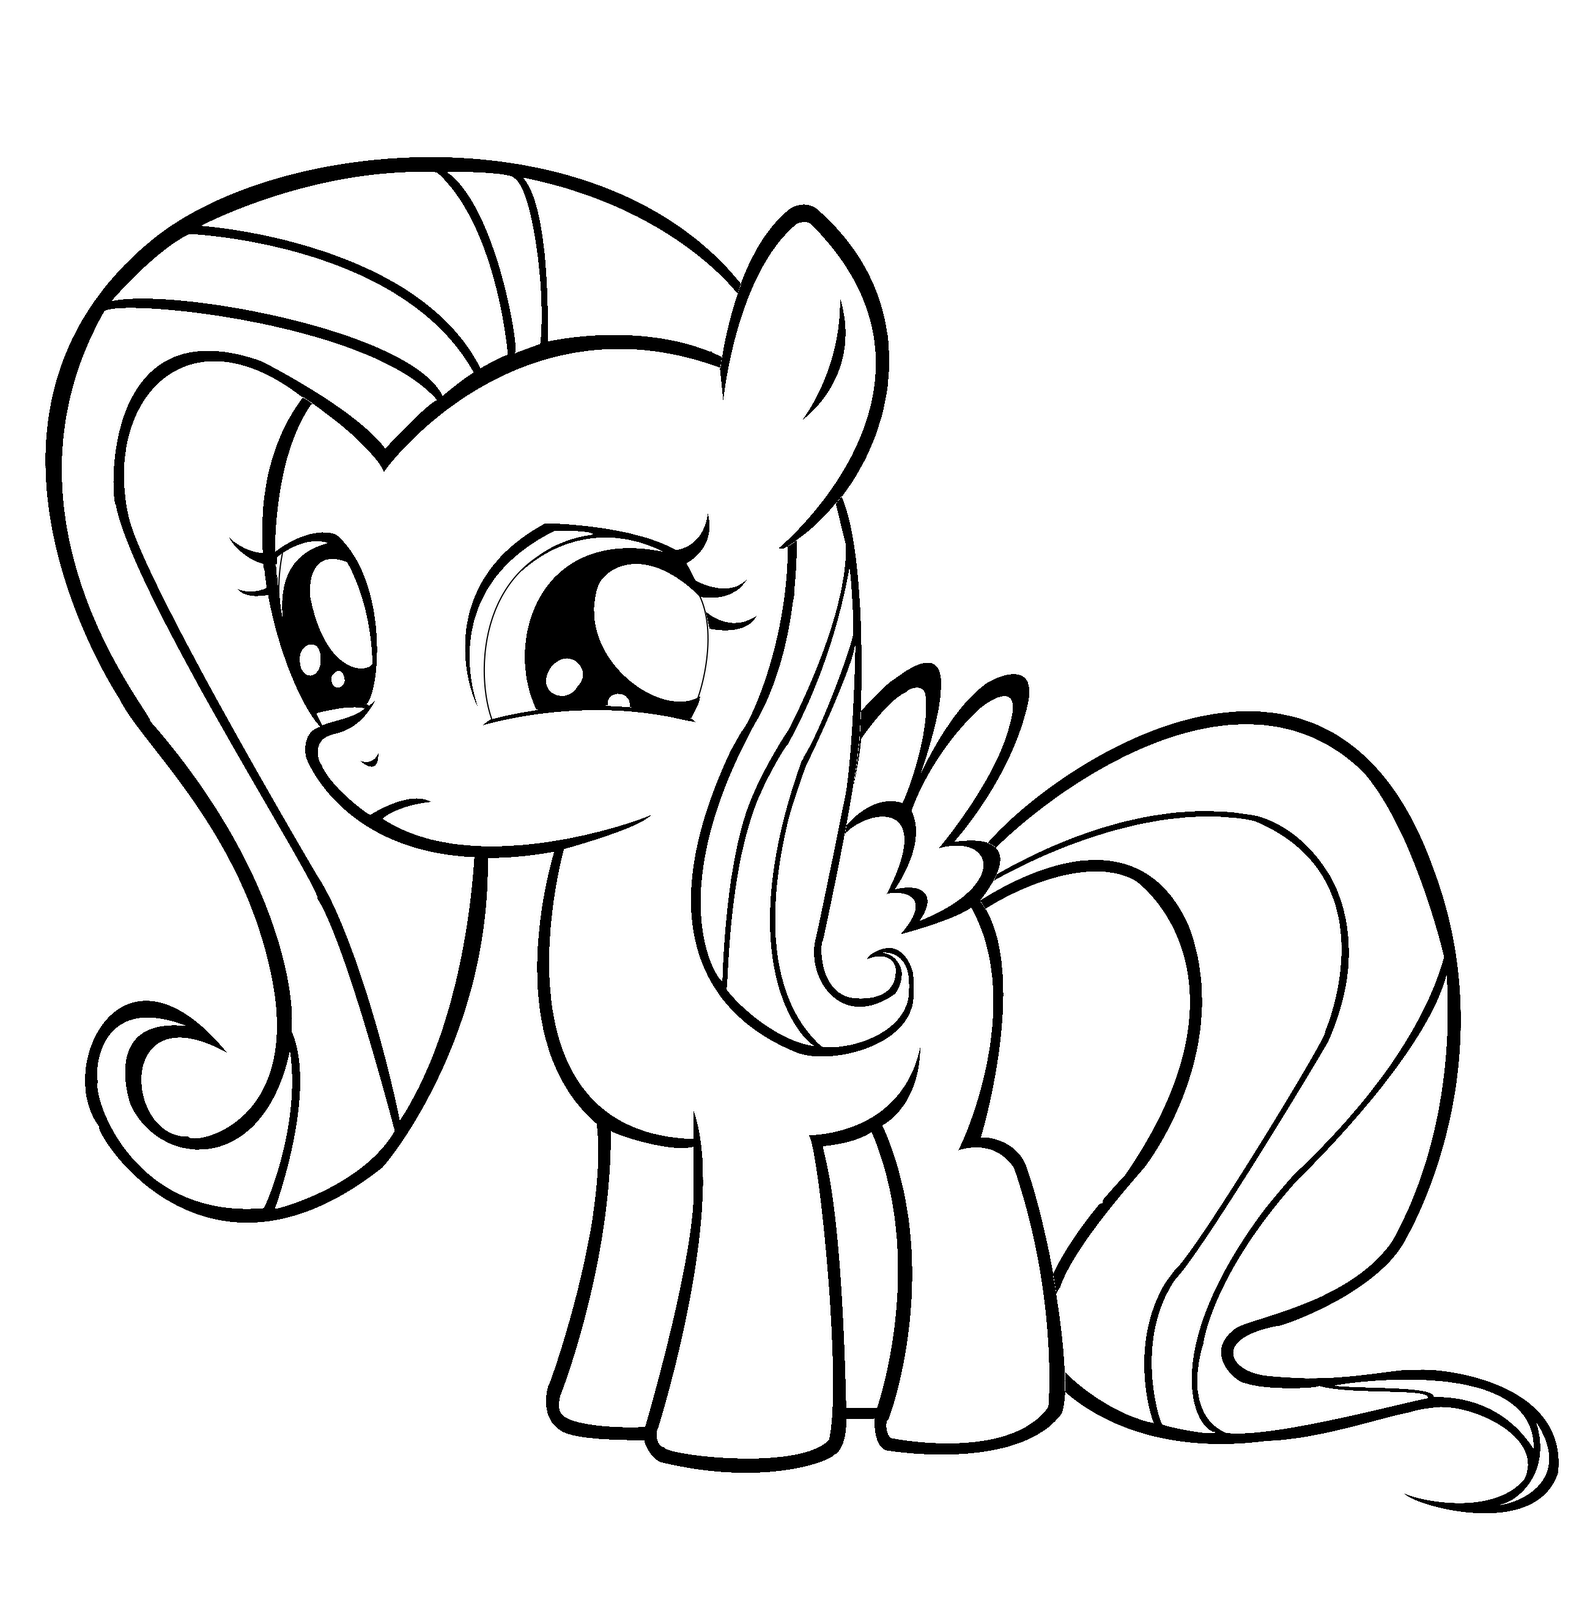 my little pony pictures to colour fluttershy coloring pages best coloring pages for kids colour pony pictures little to my